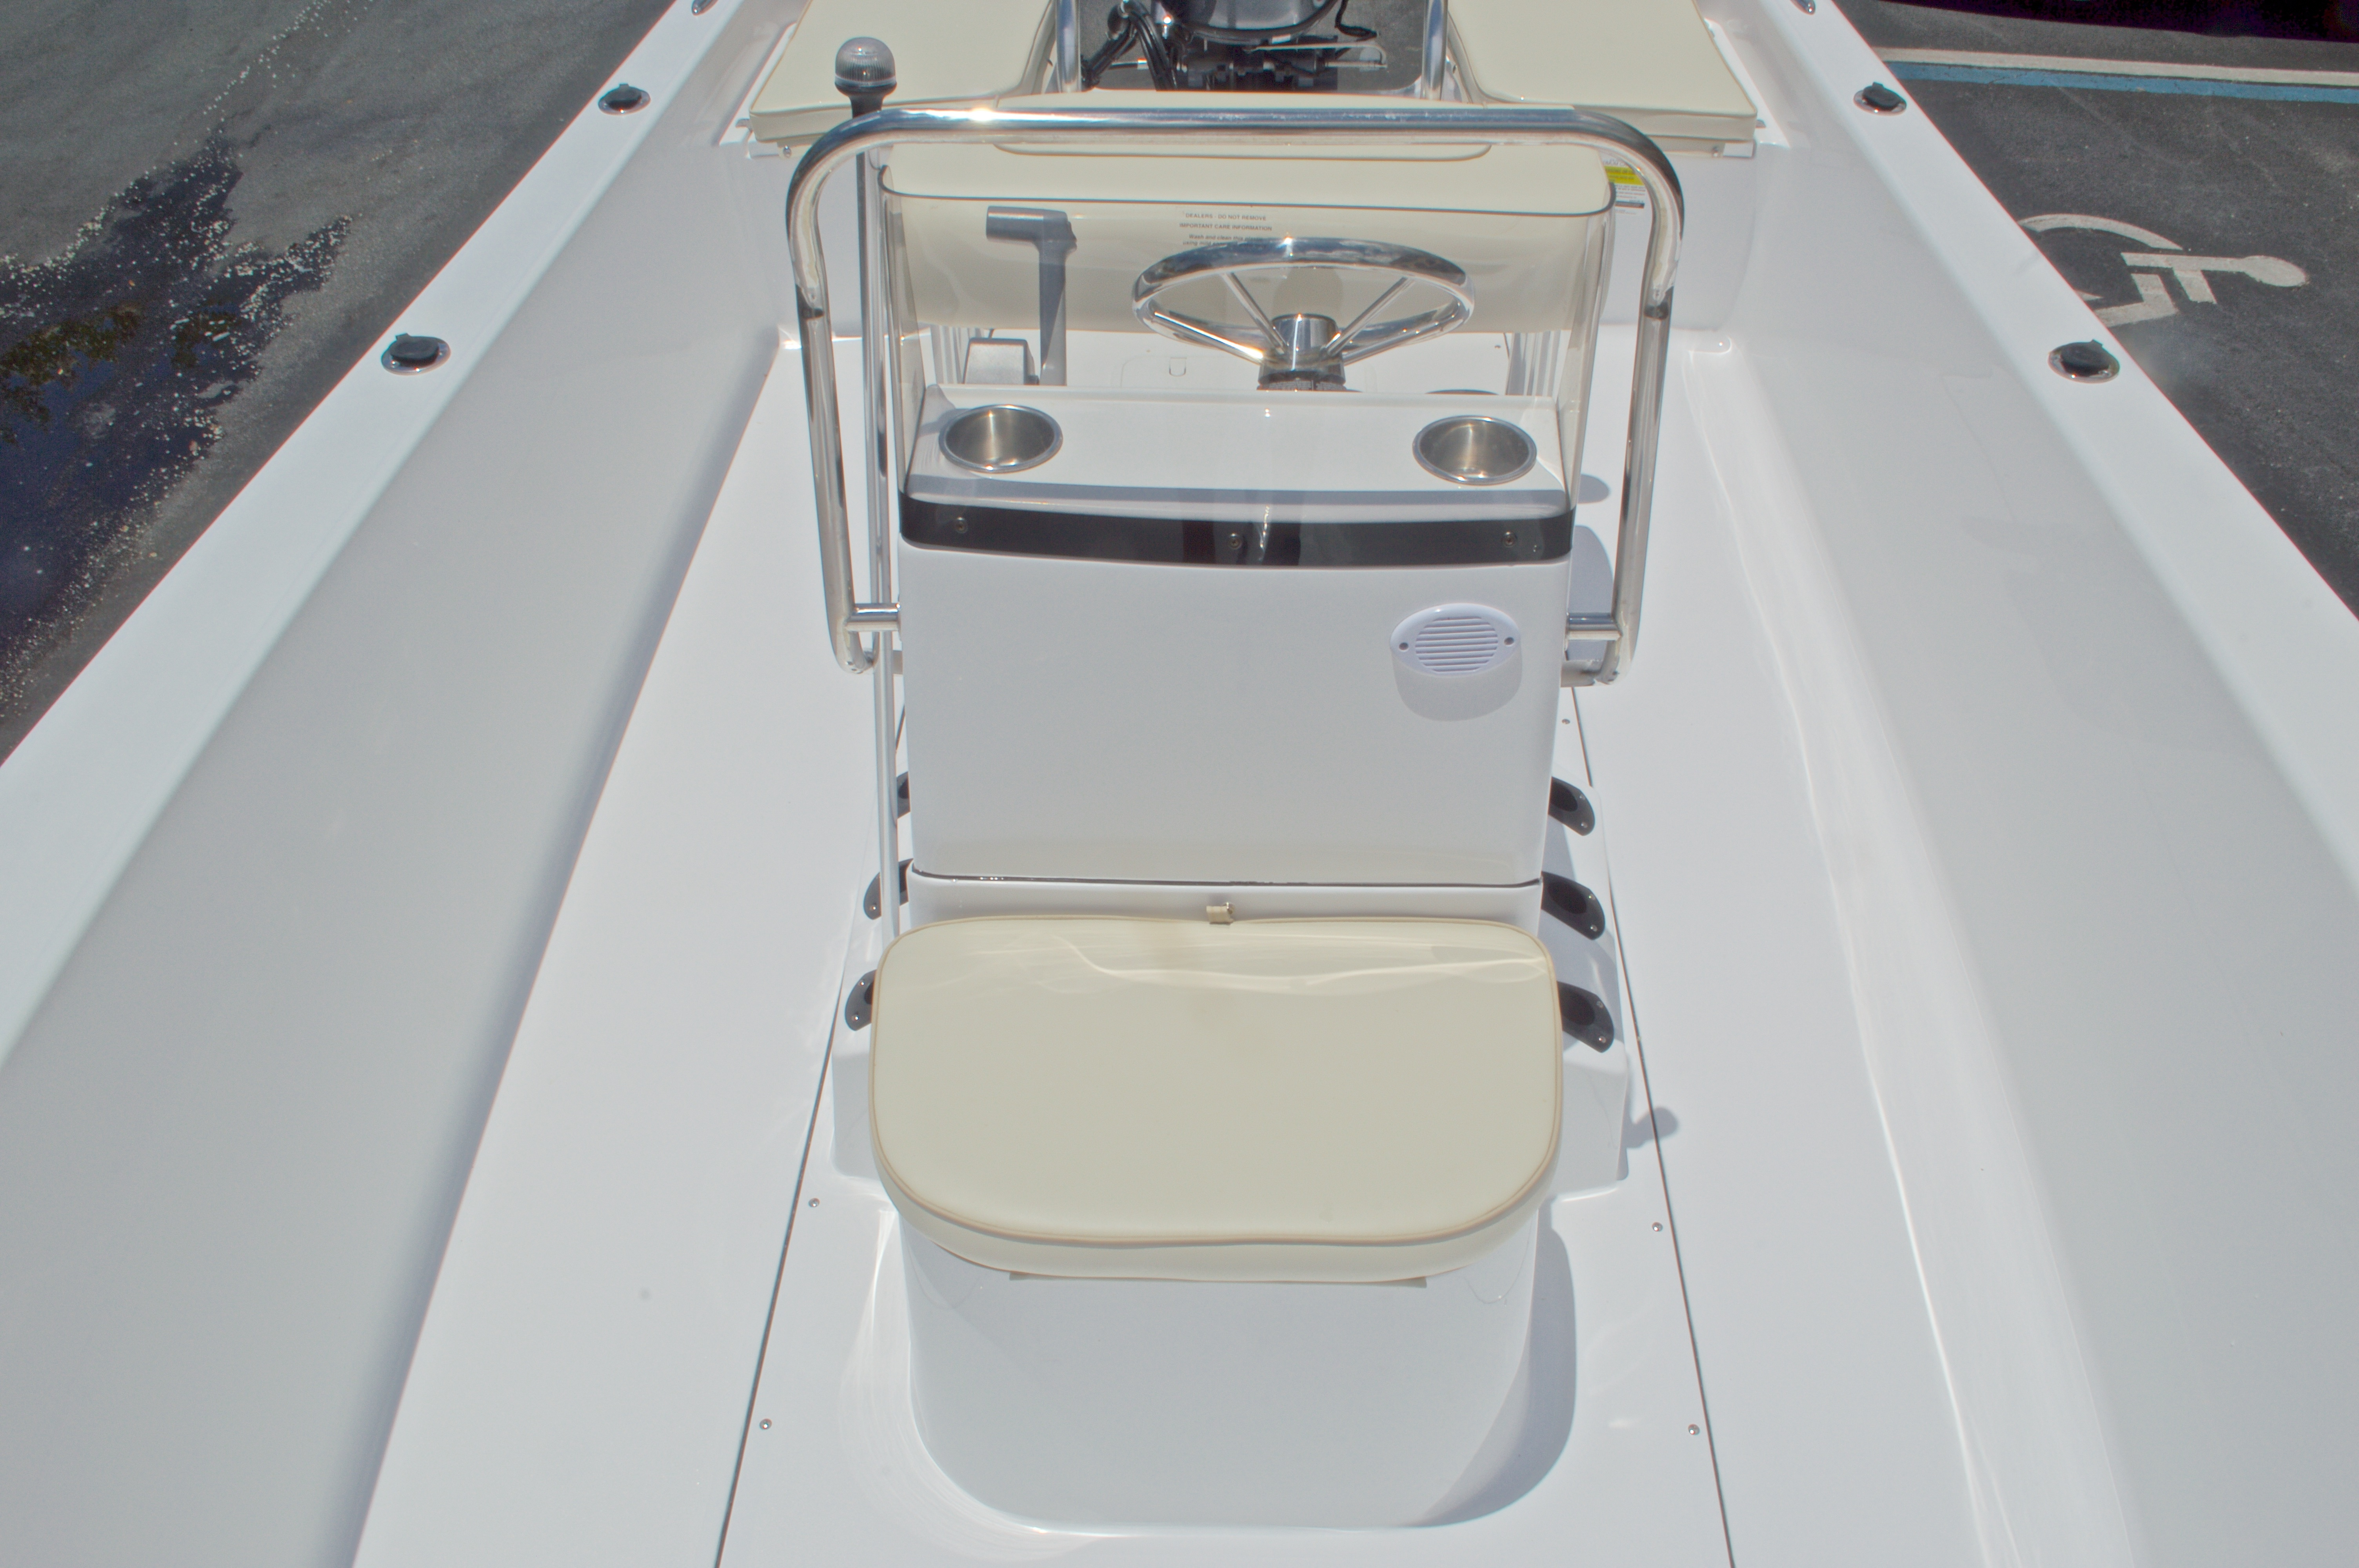 Thumbnail 27 for New 2017 Sportsman 19 Island Reef boat for sale in West Palm Beach, FL